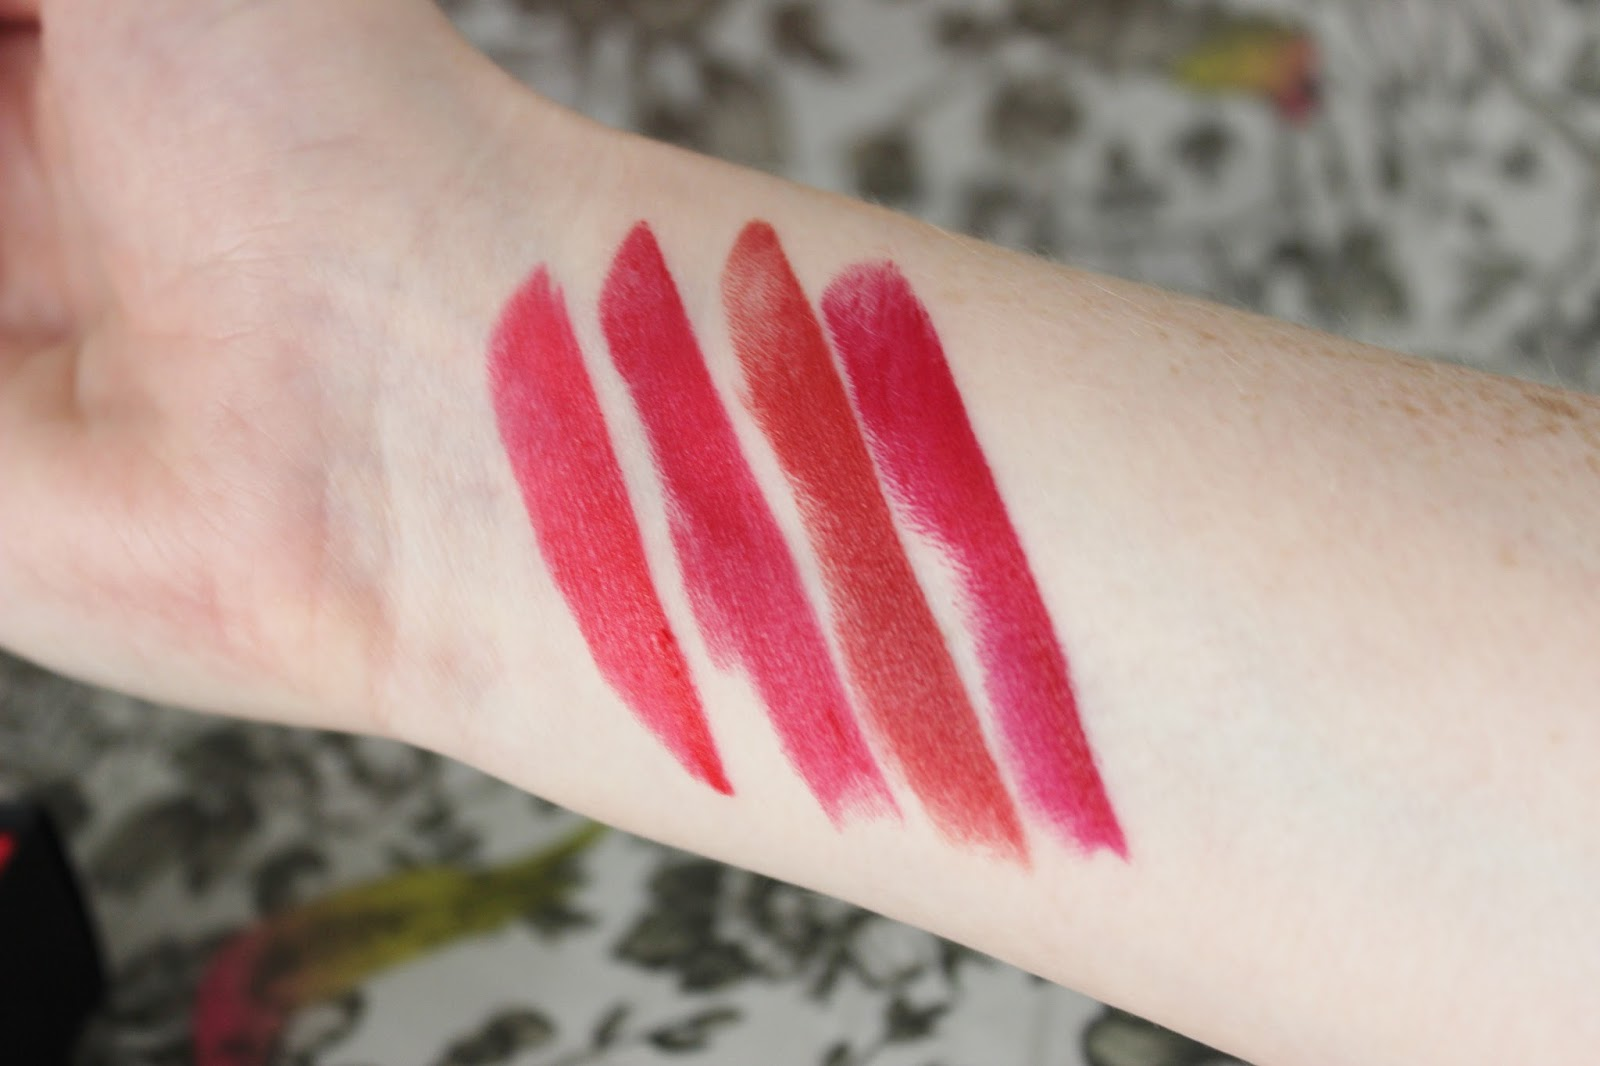 Son L'Oreal pure reds swatches - Julianne, Liya's, Eva's and Blake's